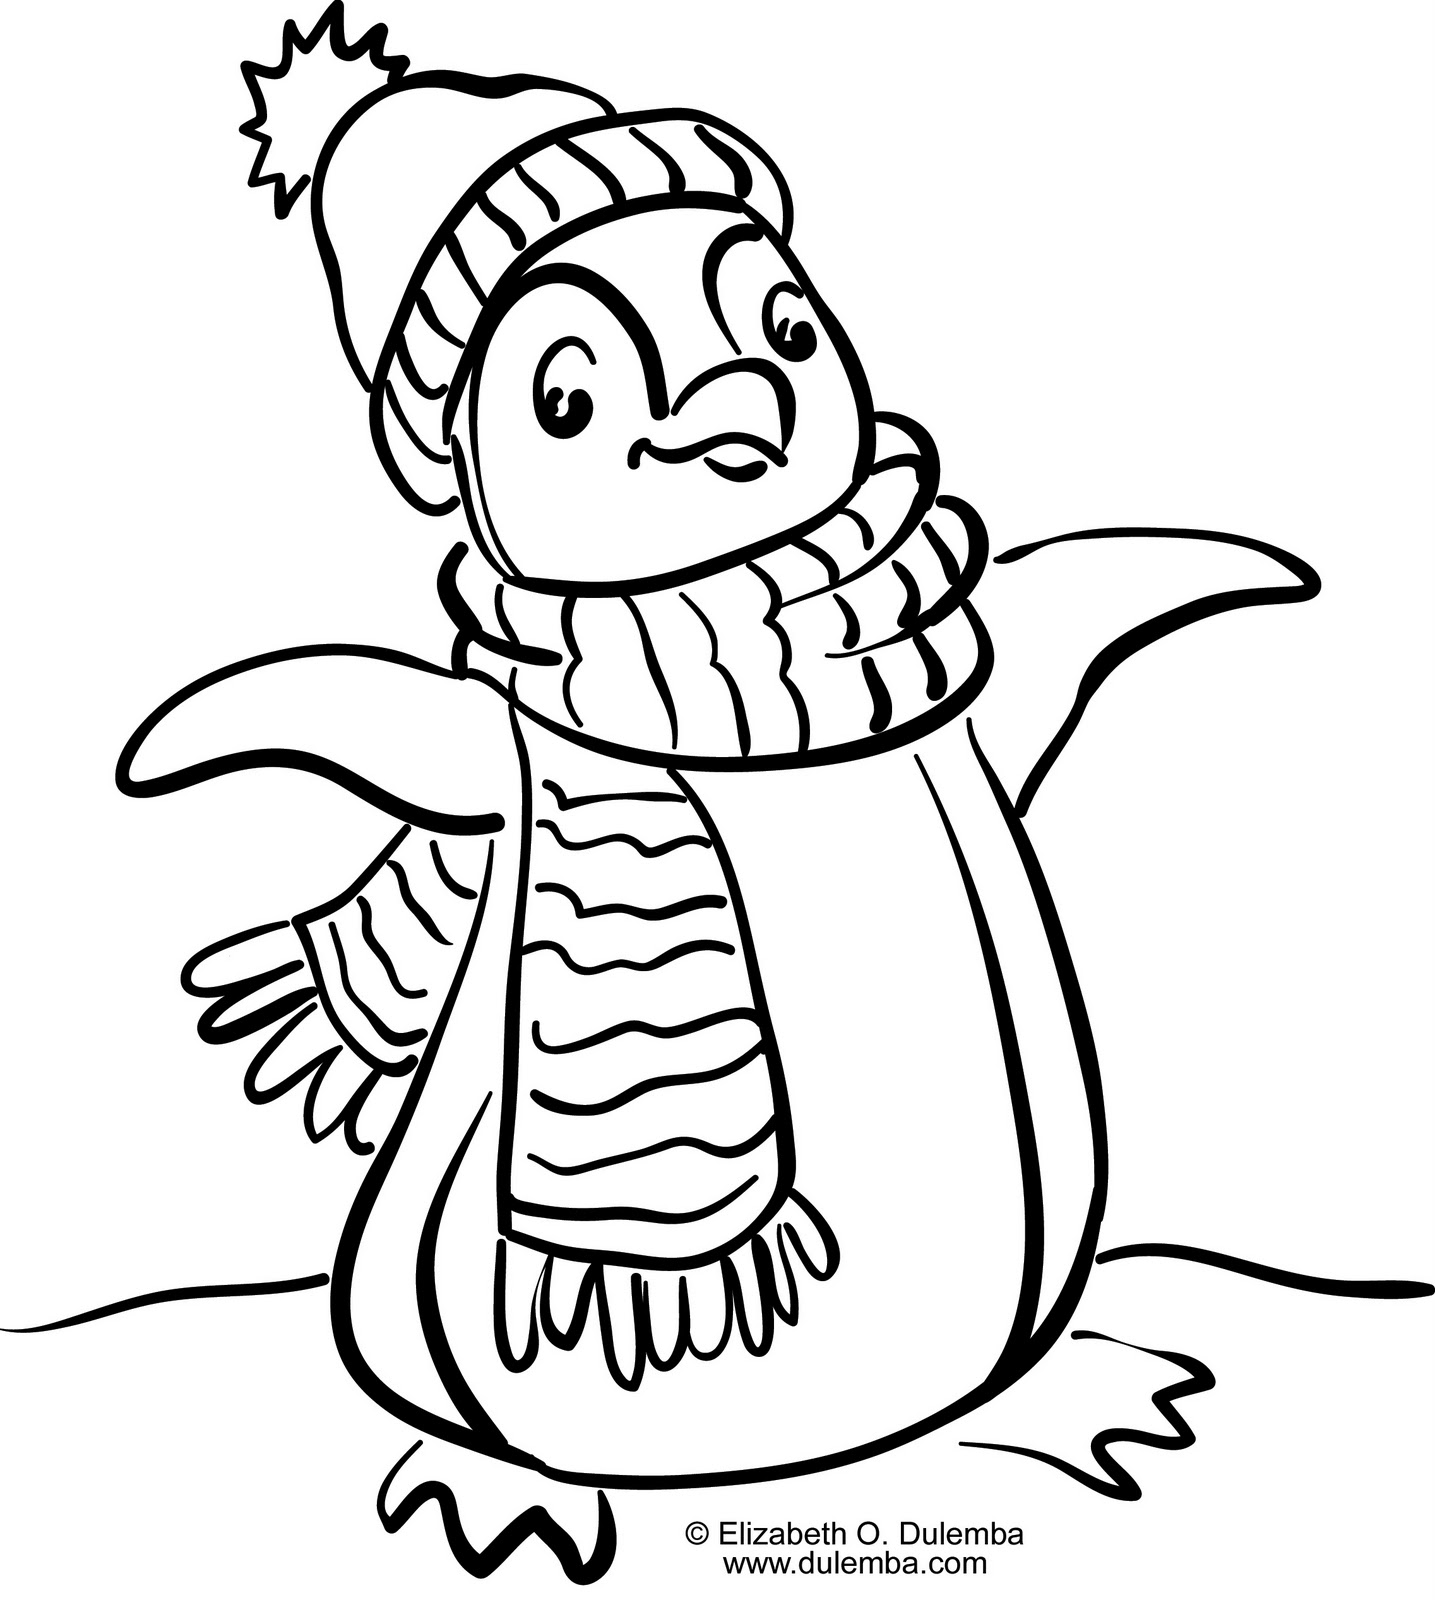 Happy Feet coloring page for kids